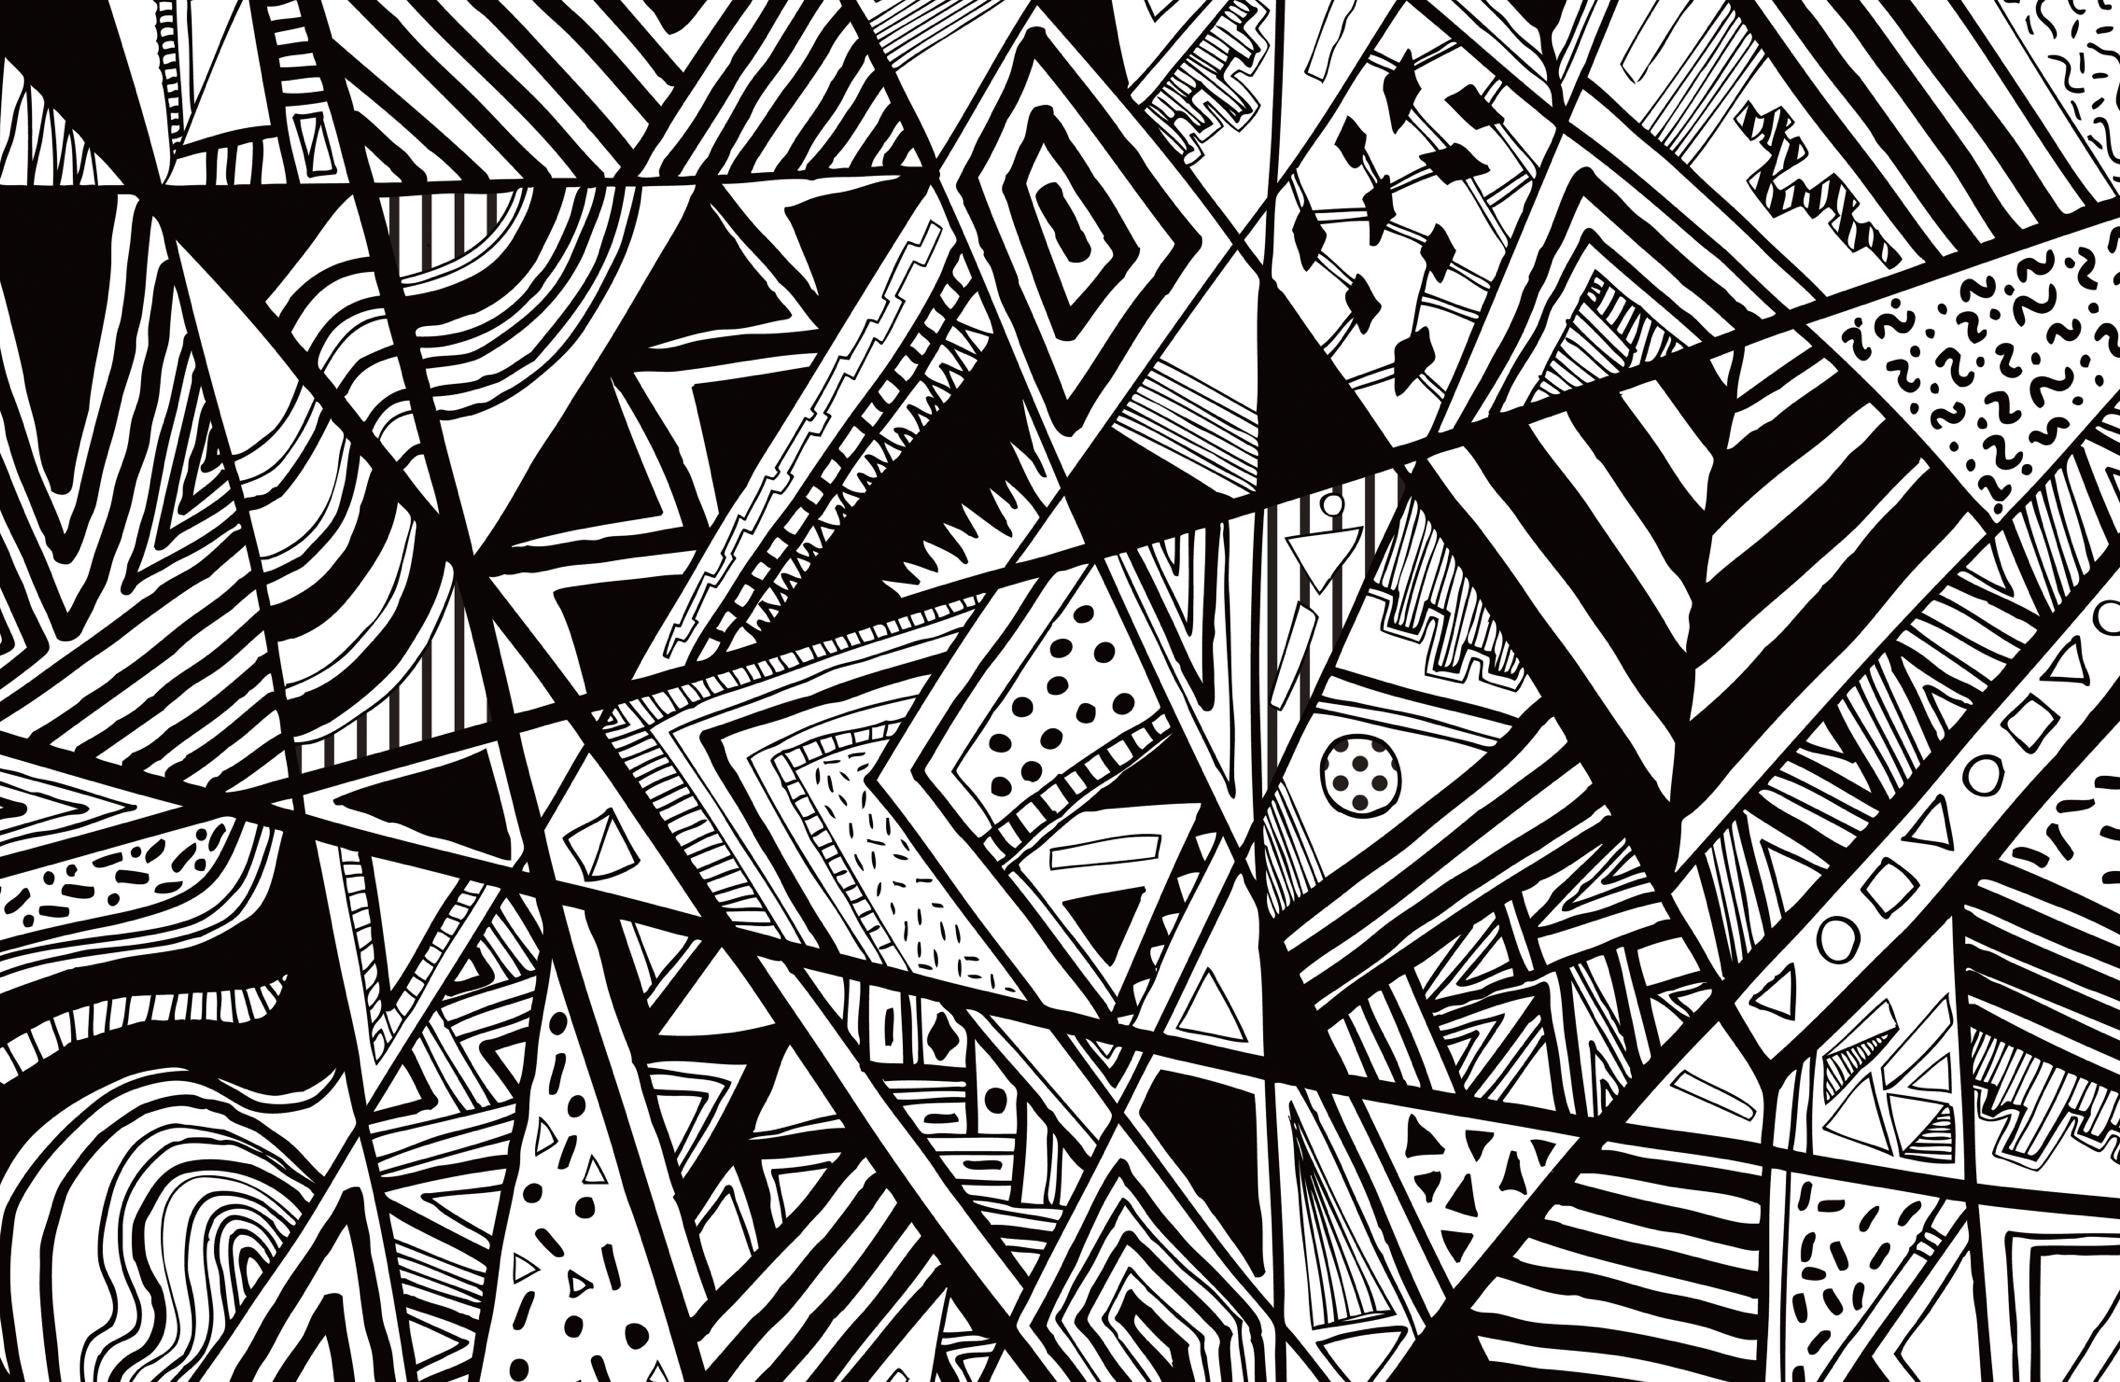 30 image for pc: black and white abstract